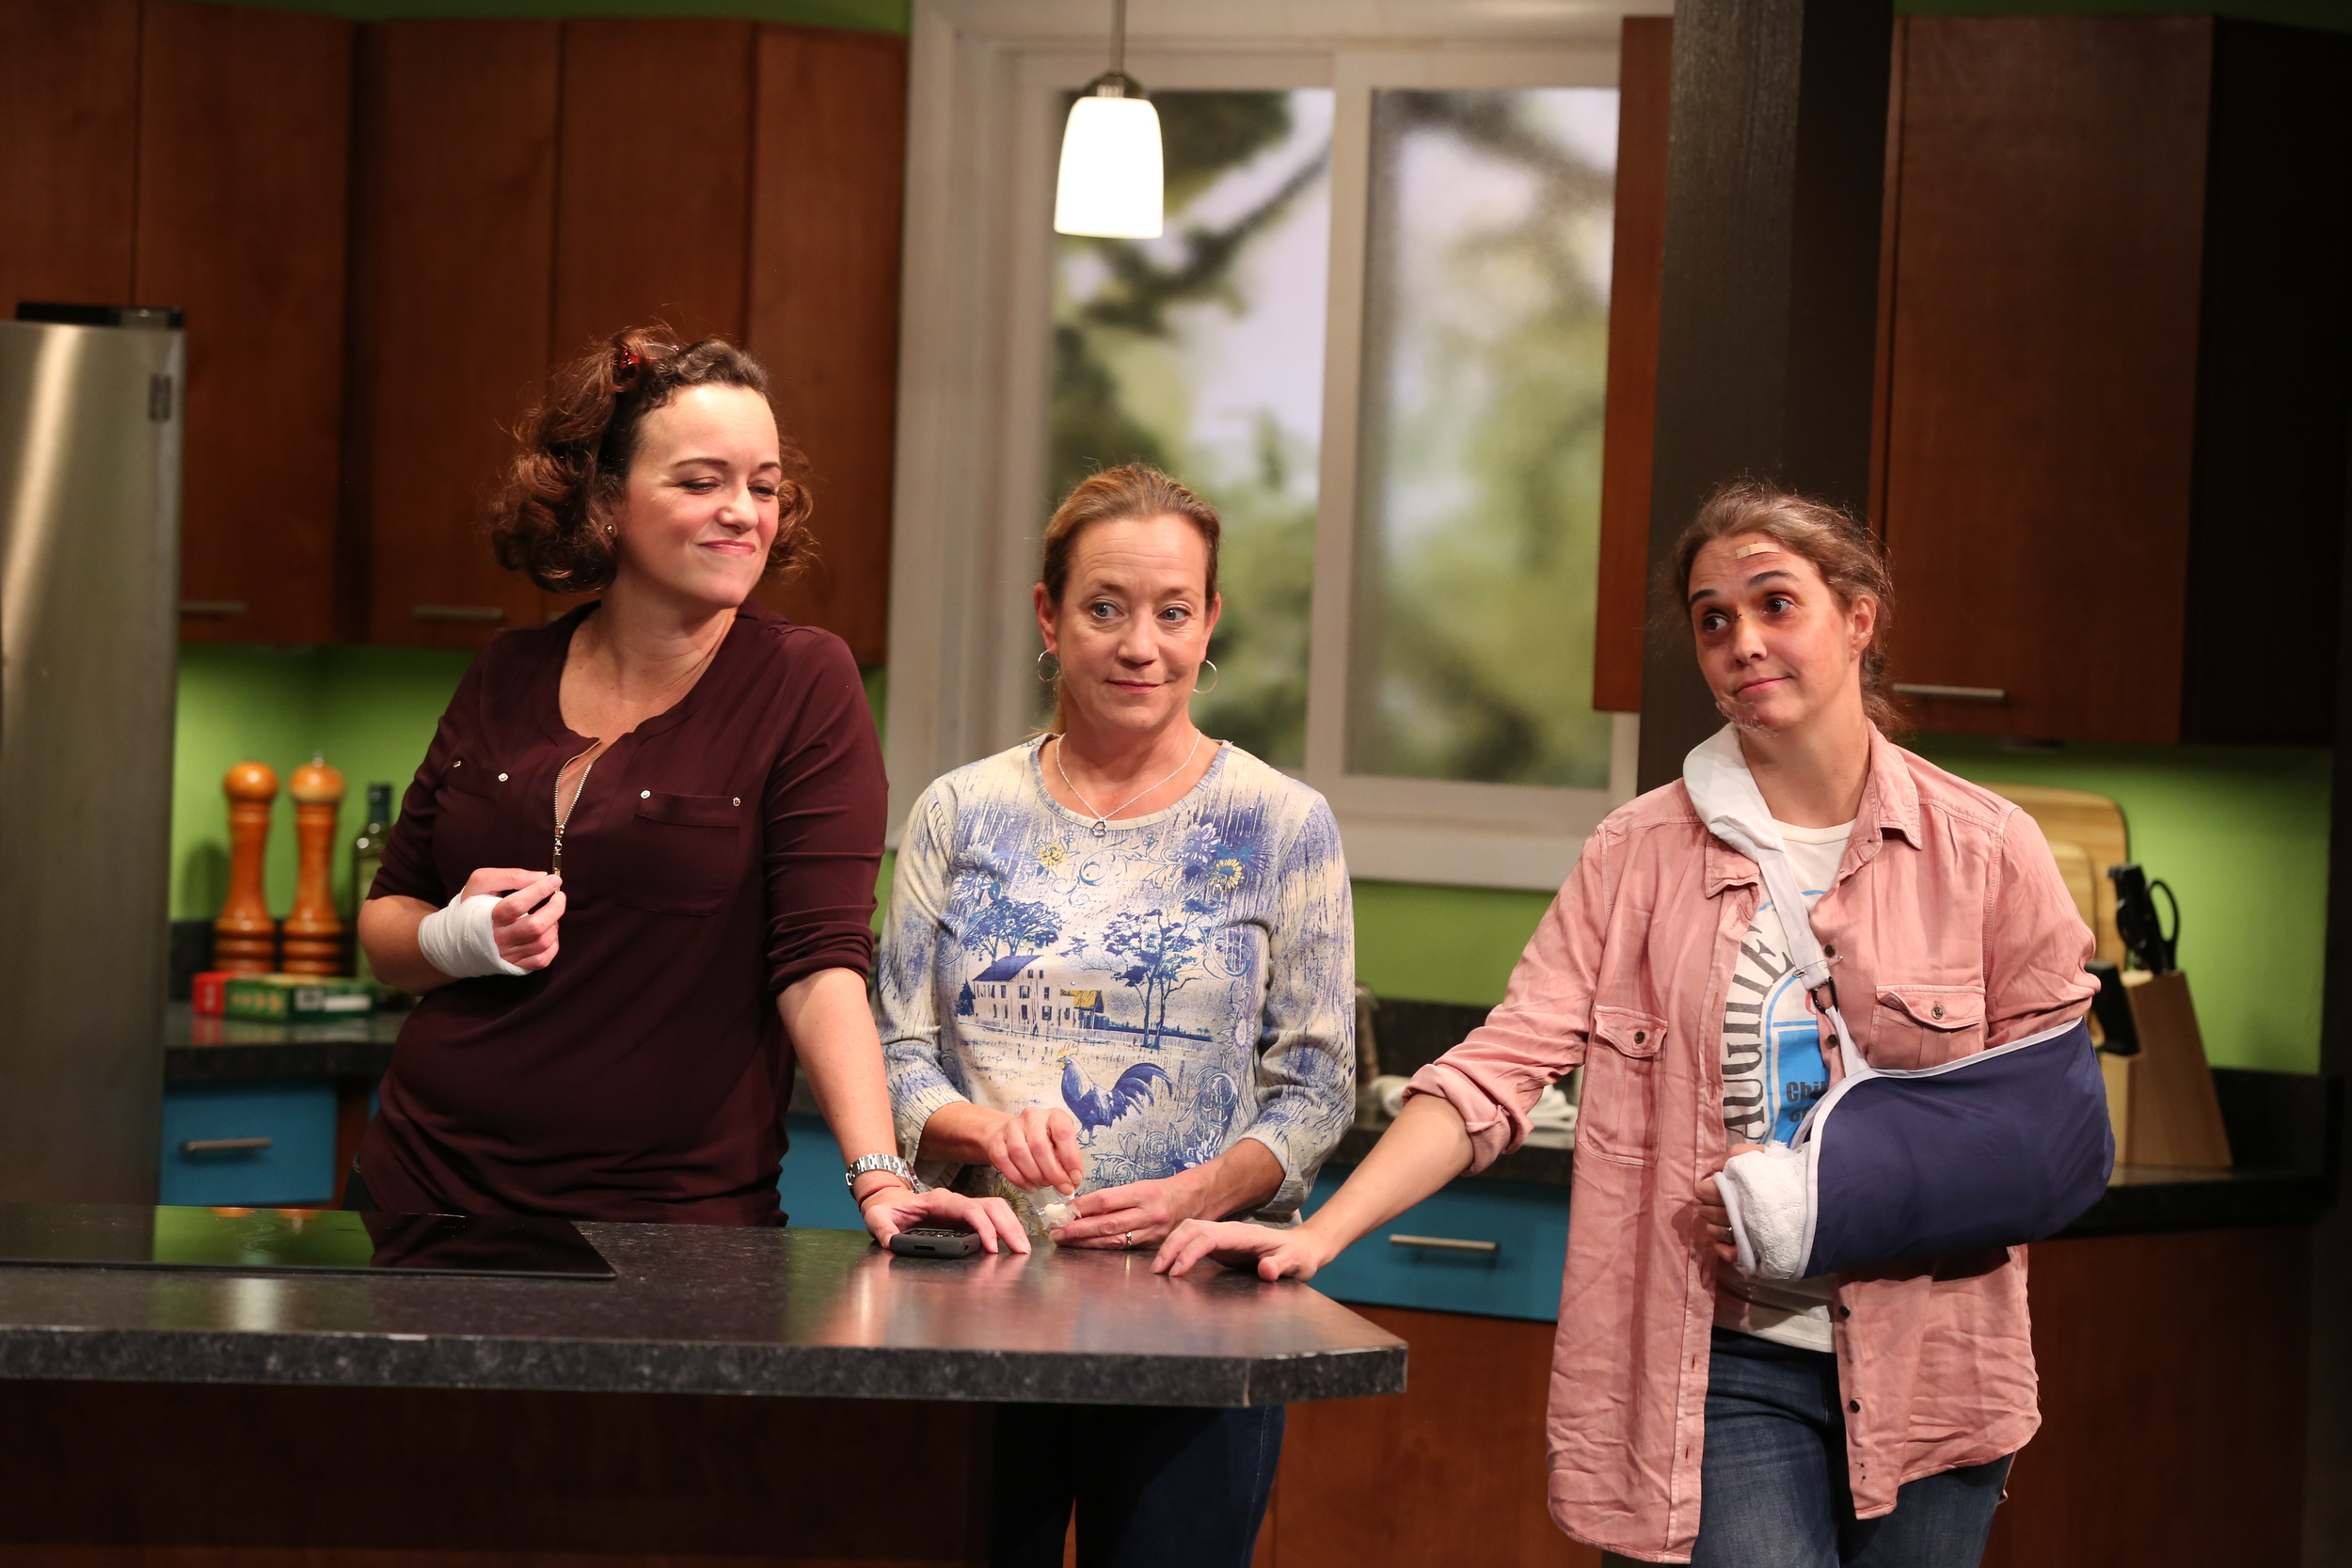 Emily Townley, Amy McWilliams, and Holly Twyford in  Bad Dog  (Nicholas Griner).